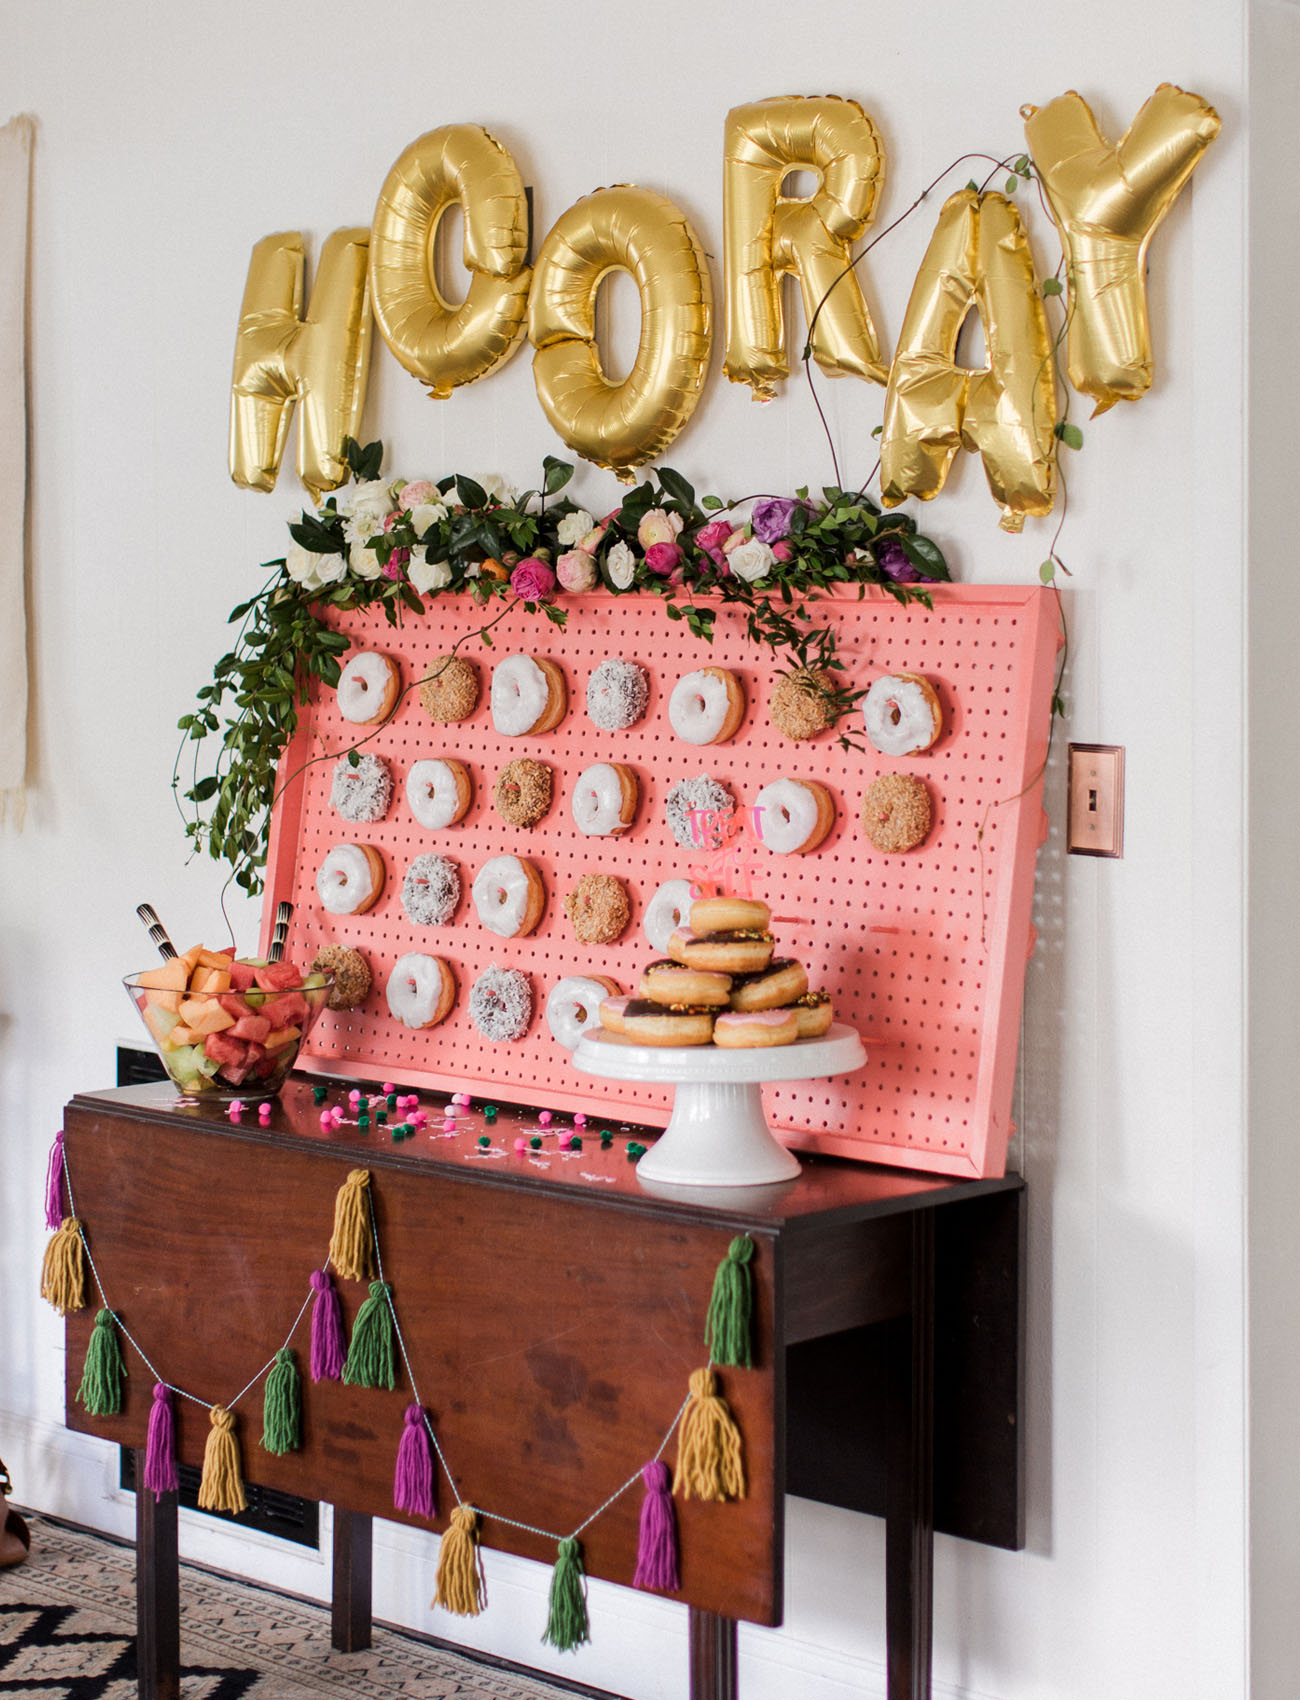 donut wall Bridal Shower photo by Kaity Brawley Photography